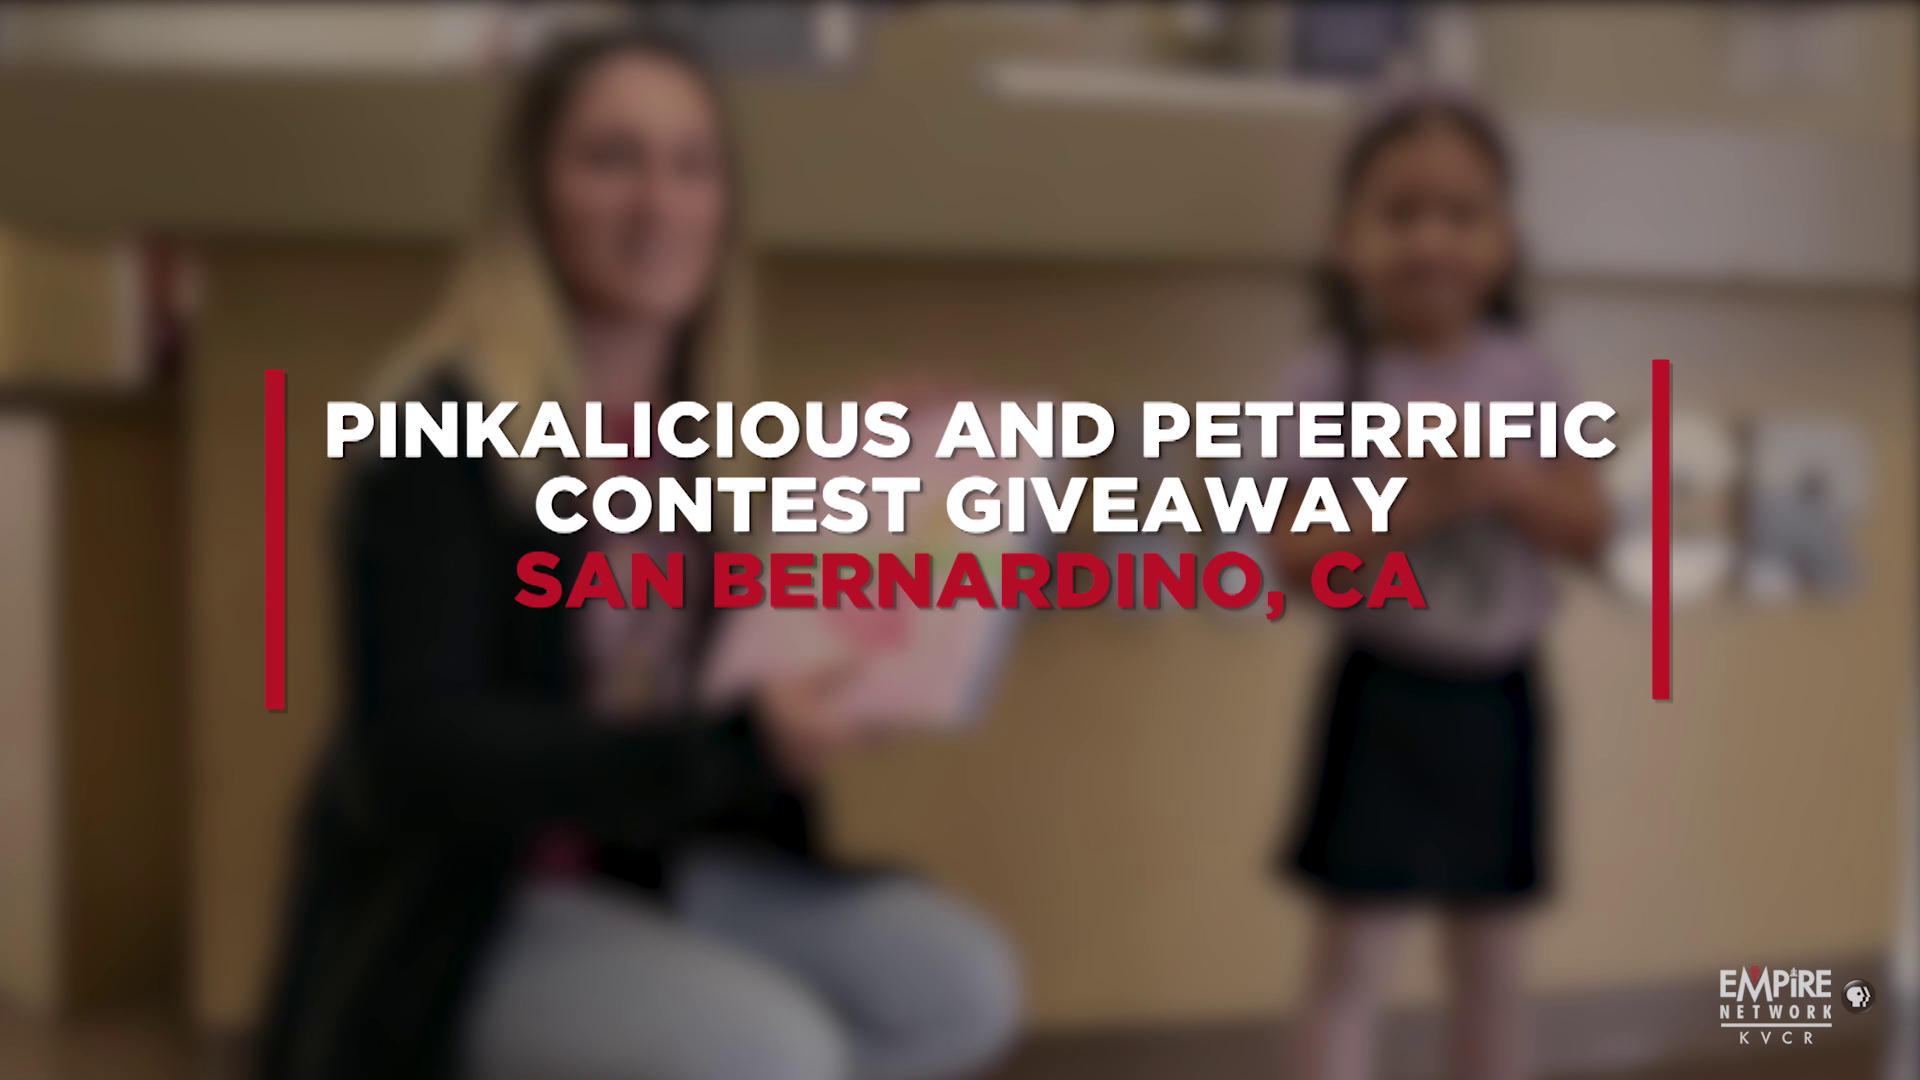 Pinkalicious and Peterrific Contest Giveaway